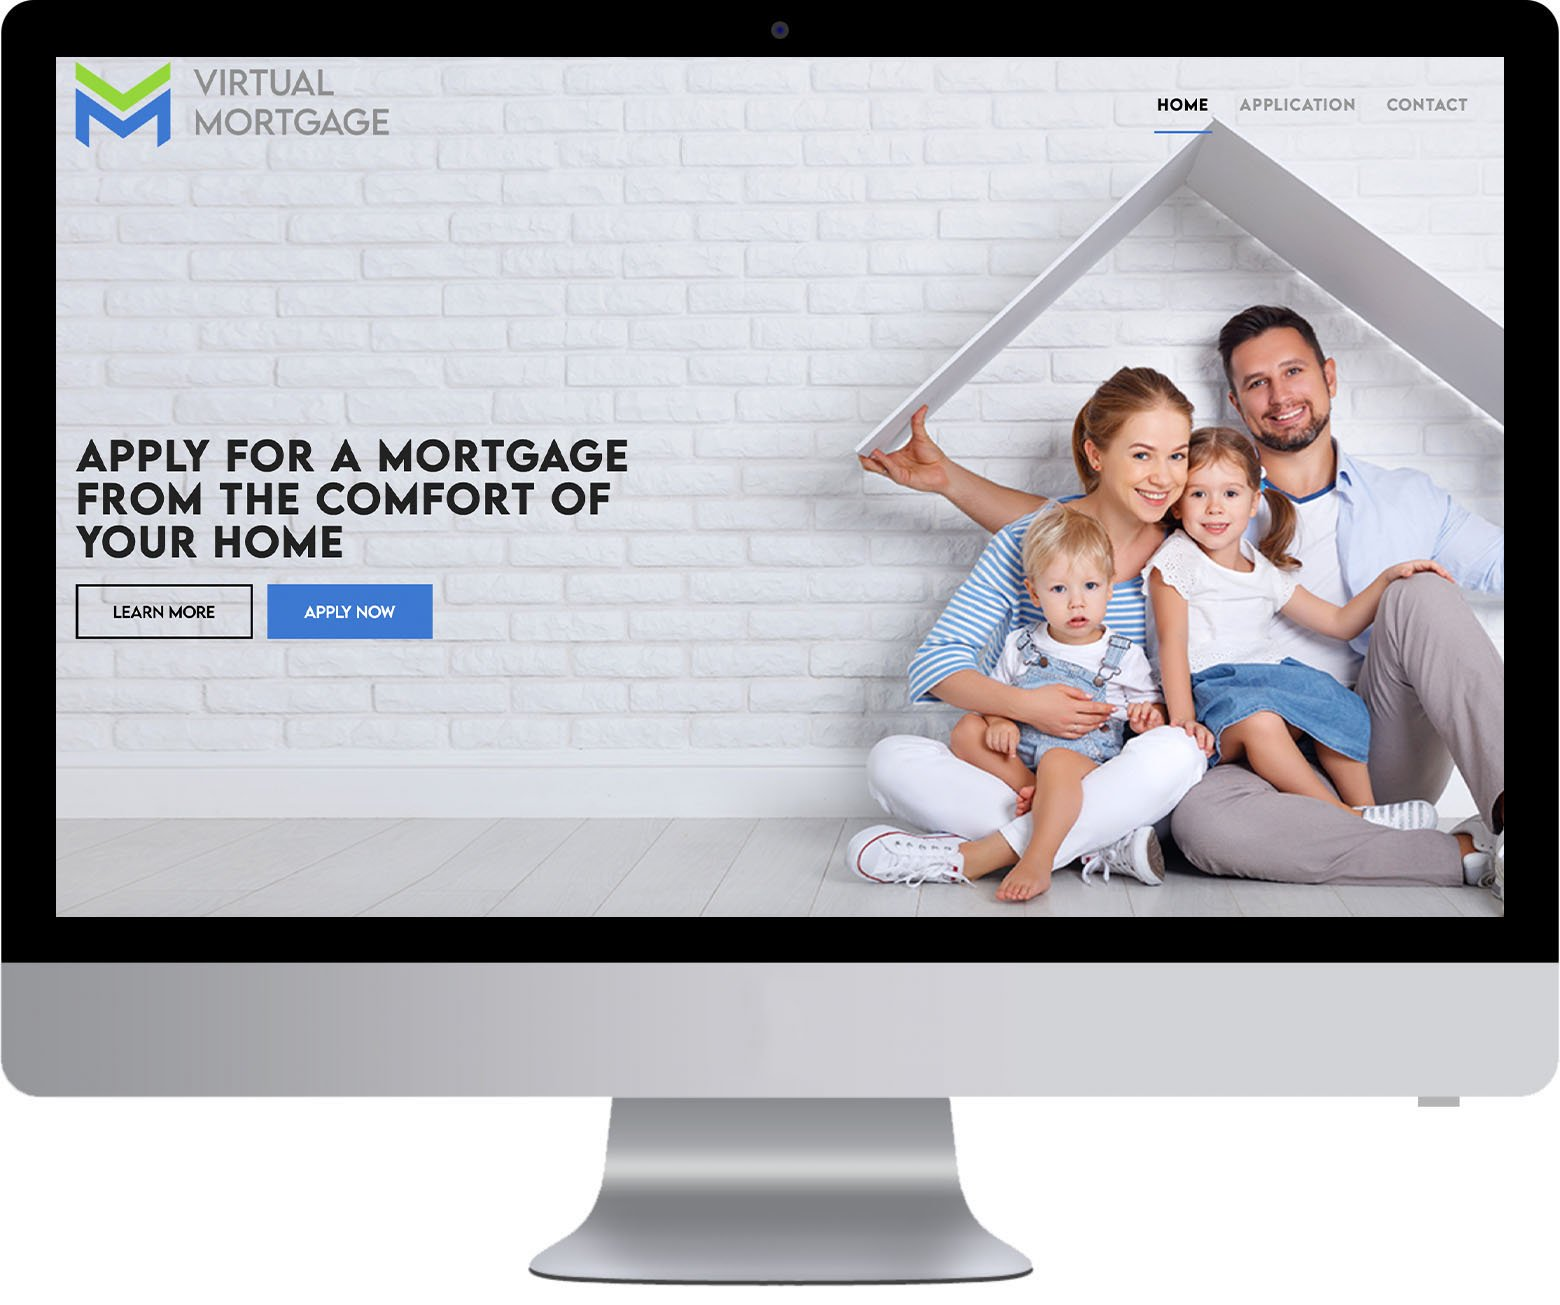 Surrey Web Development - Virtual Mortgage